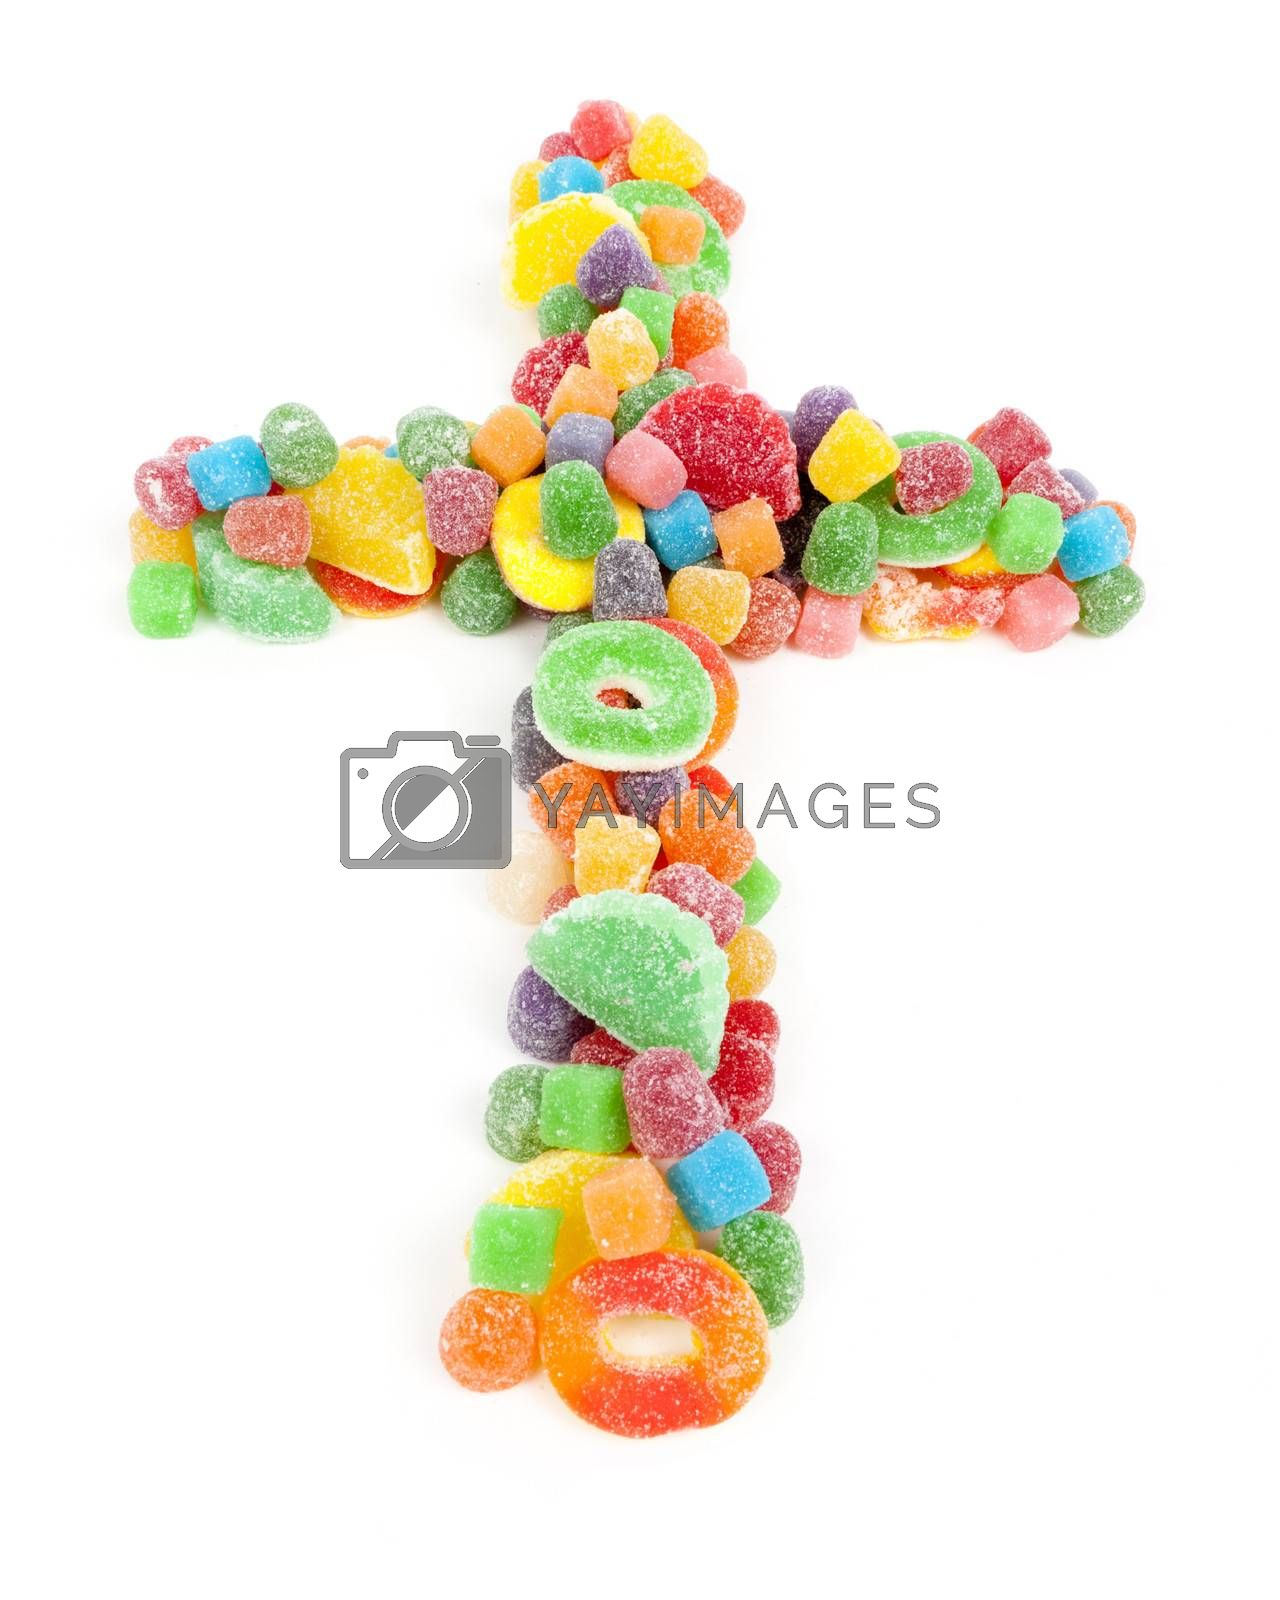 Royalty free image of Candy Cross by mothy20